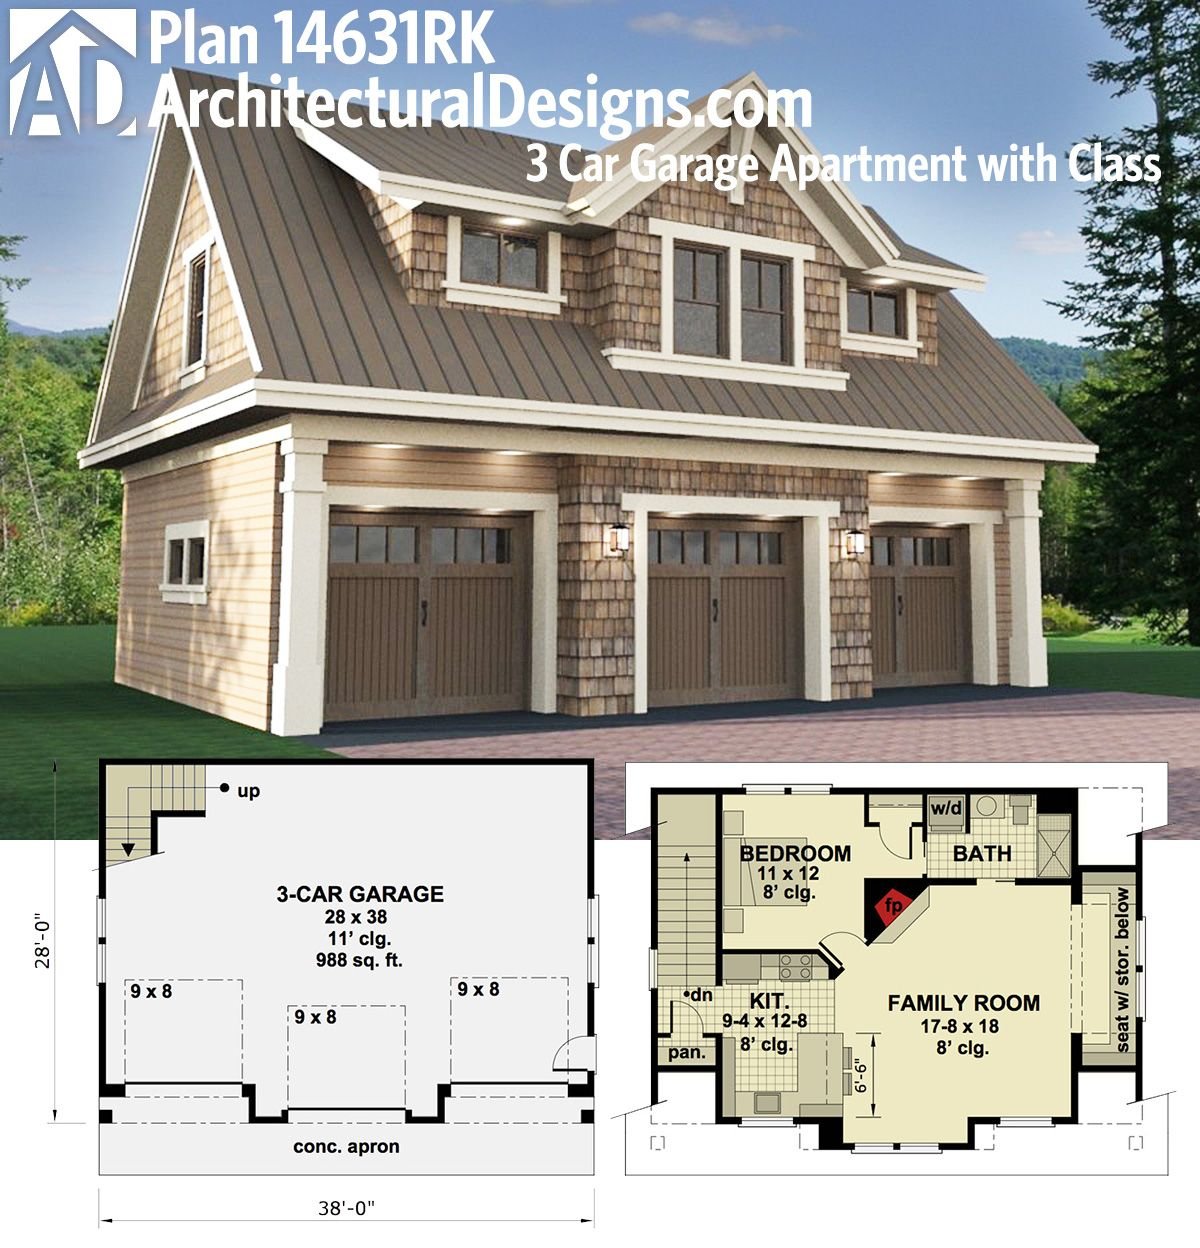 Plan 14631rk 3 car garage apartment with class carriage for Garage house floor plans